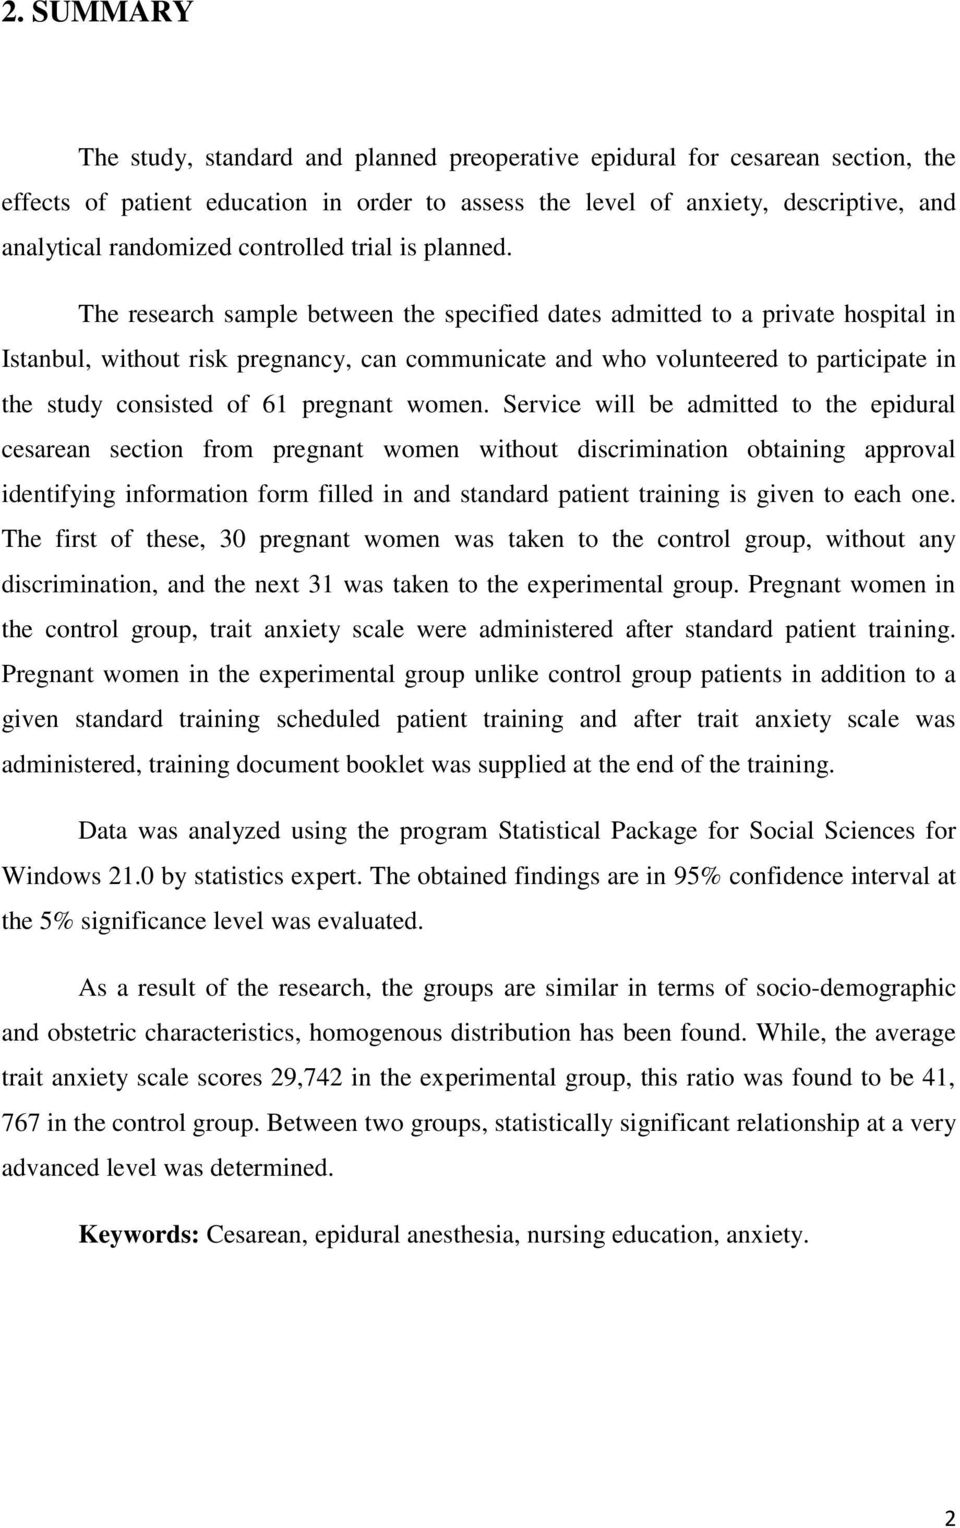 The research sample between the specified dates admitted to a private hospital in Istanbul, without risk pregnancy, can communicate and who volunteered to participate in the study consisted of 61